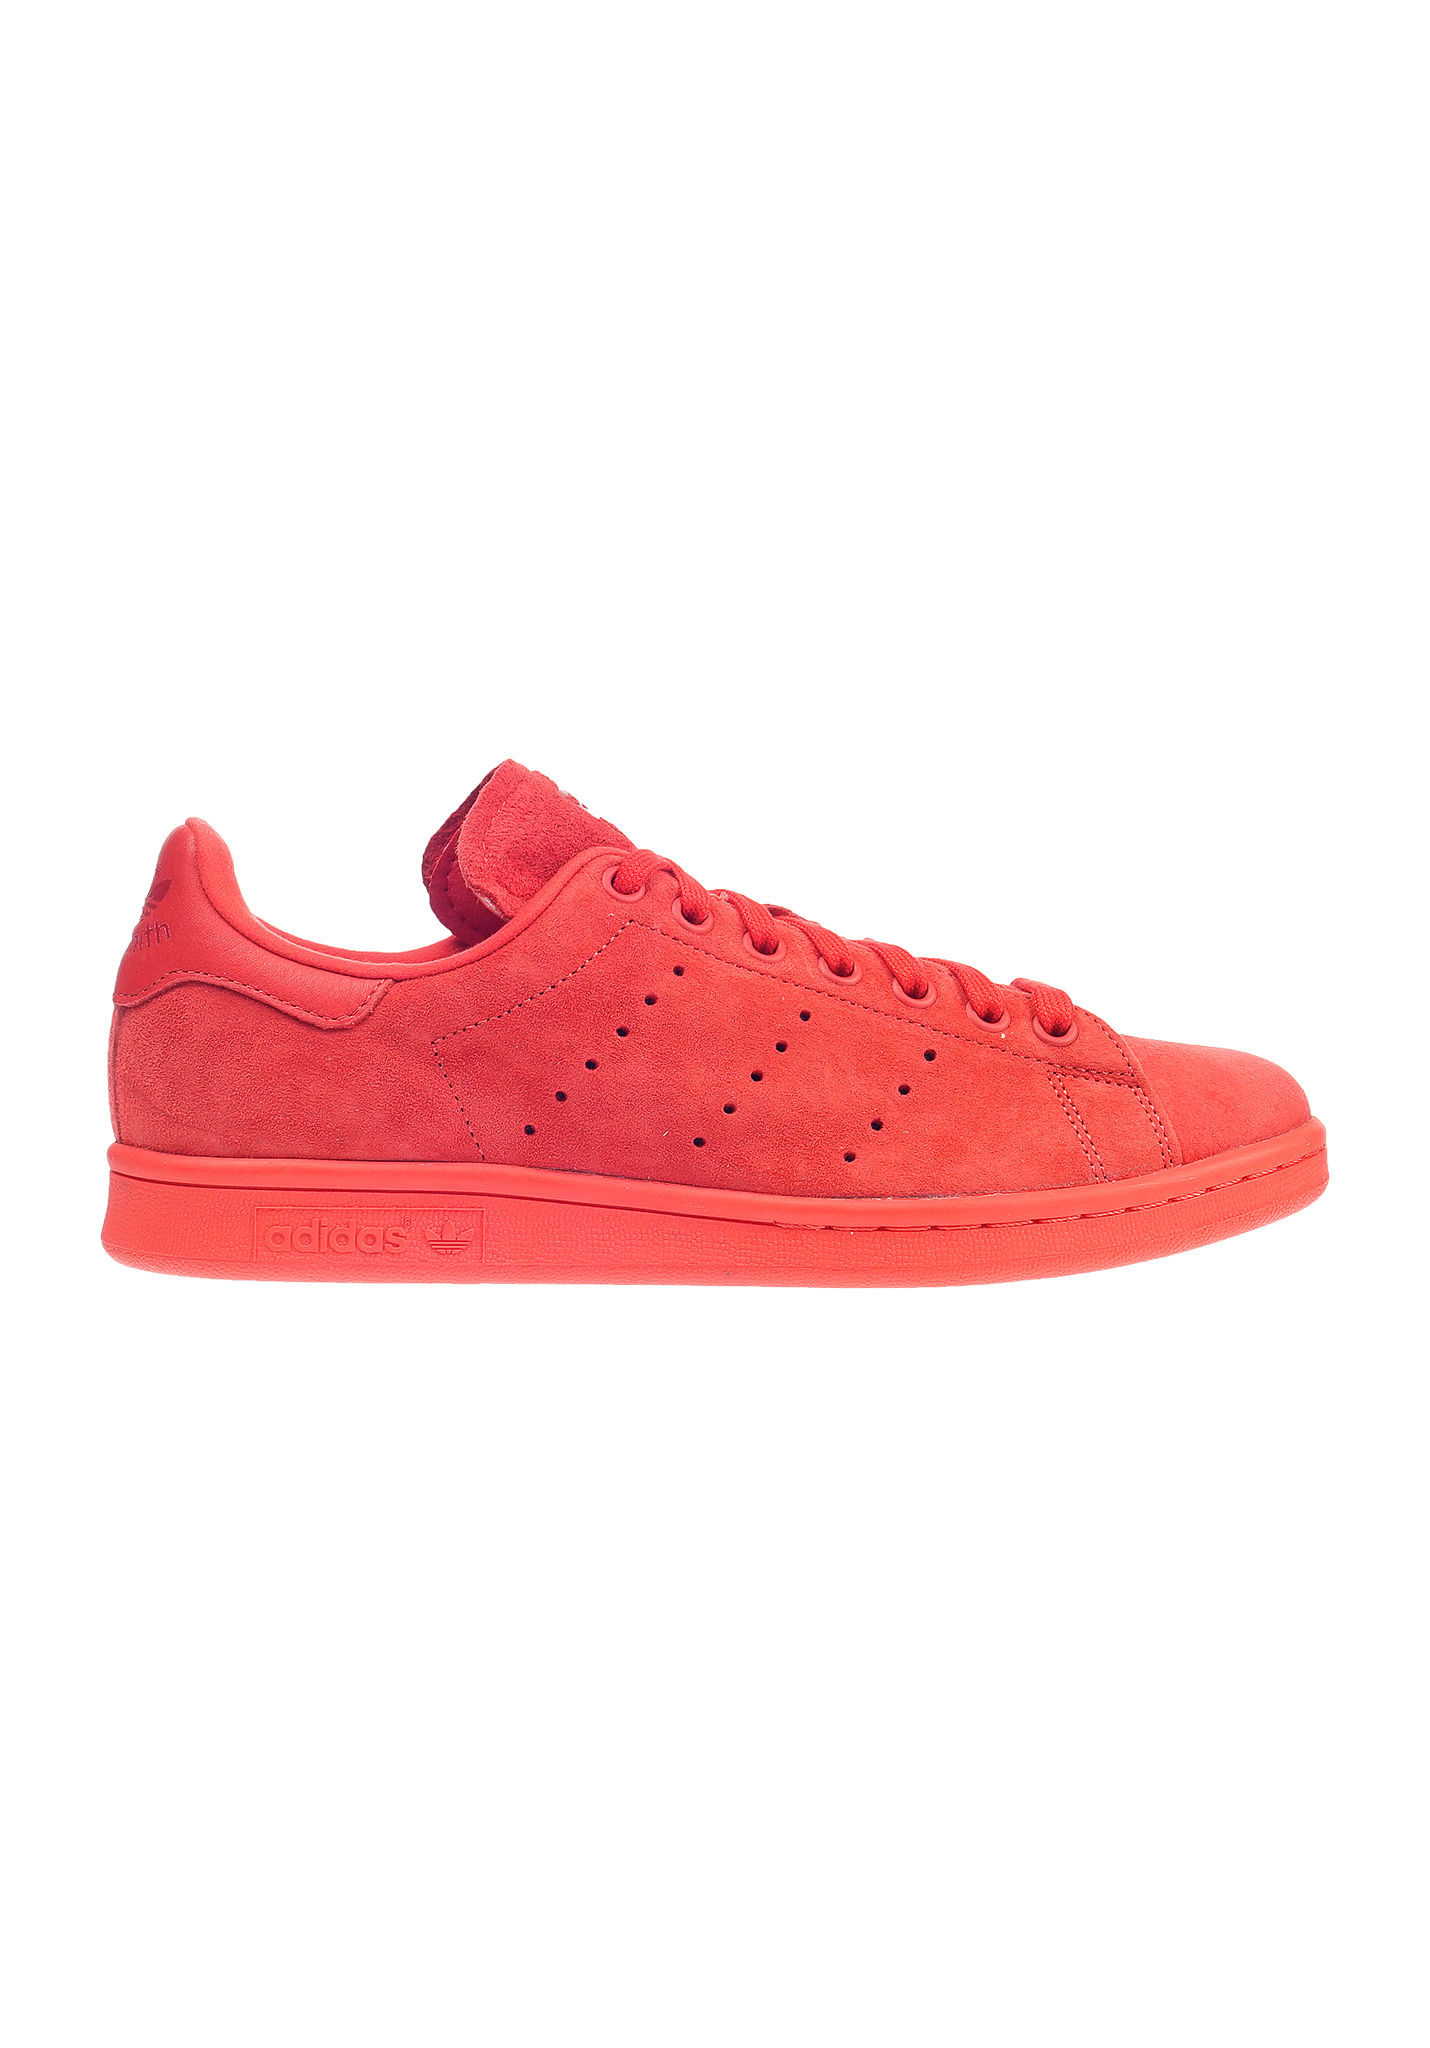 Adidas Smith Colores